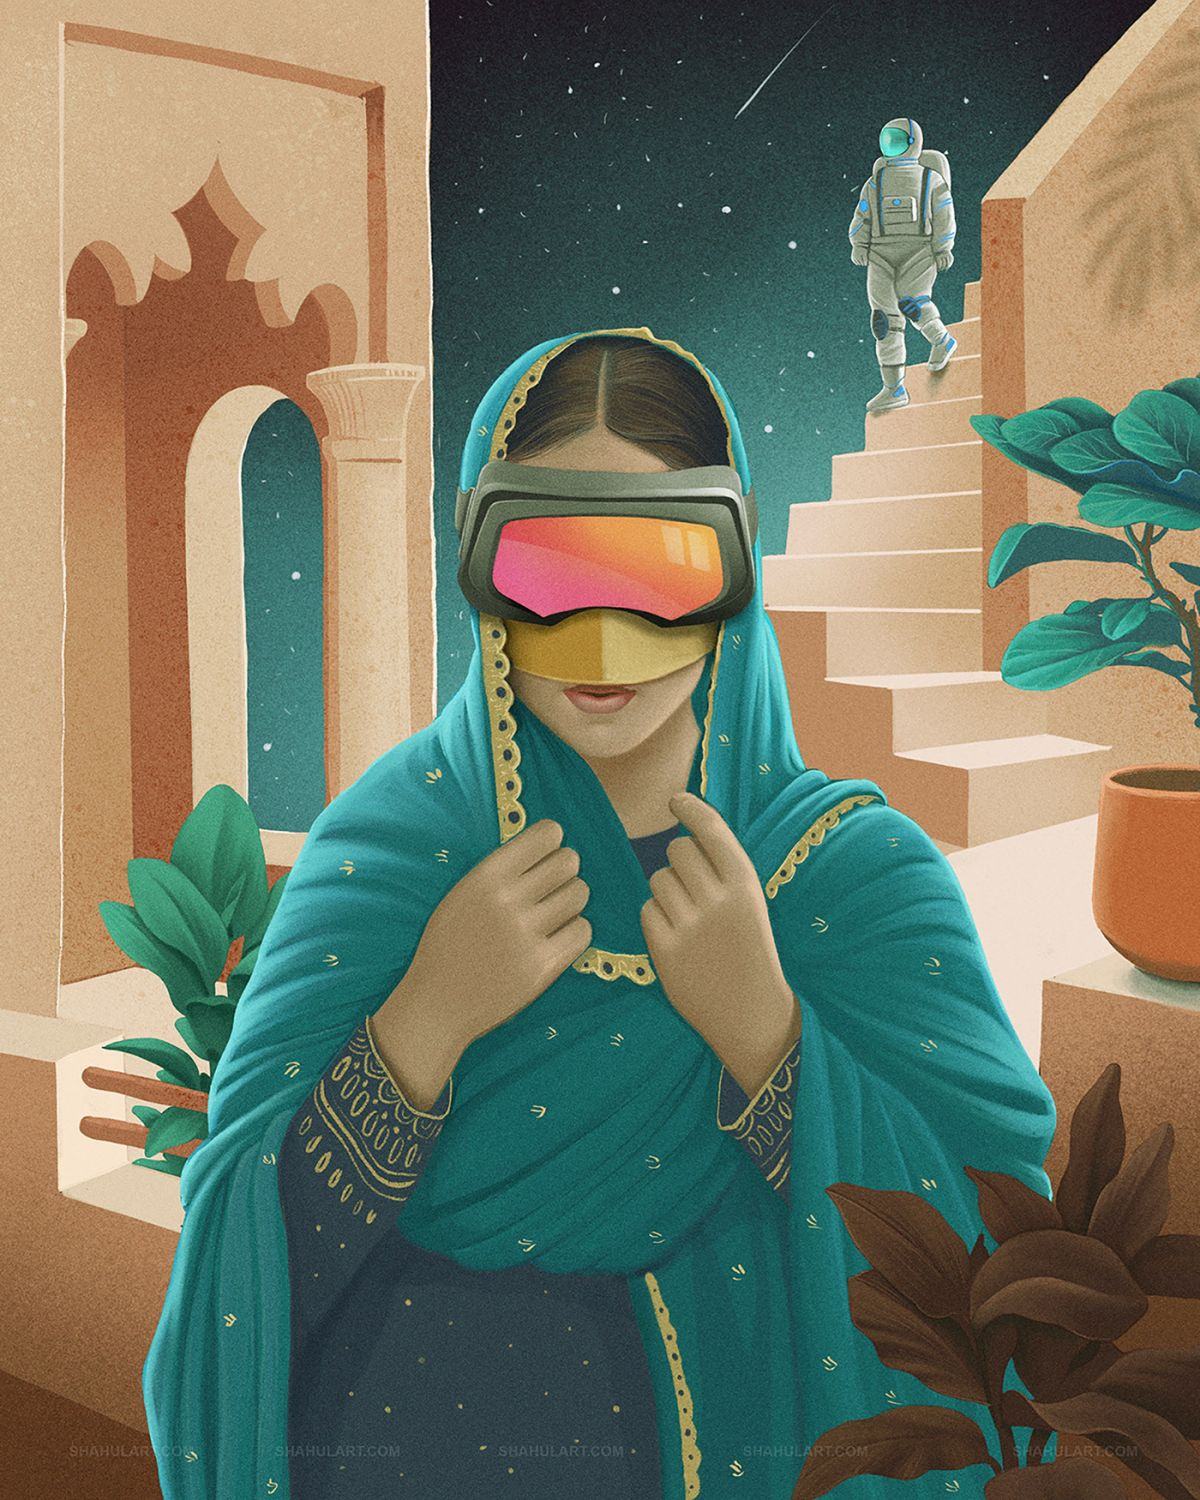 digital illustration uae space shahul hameed